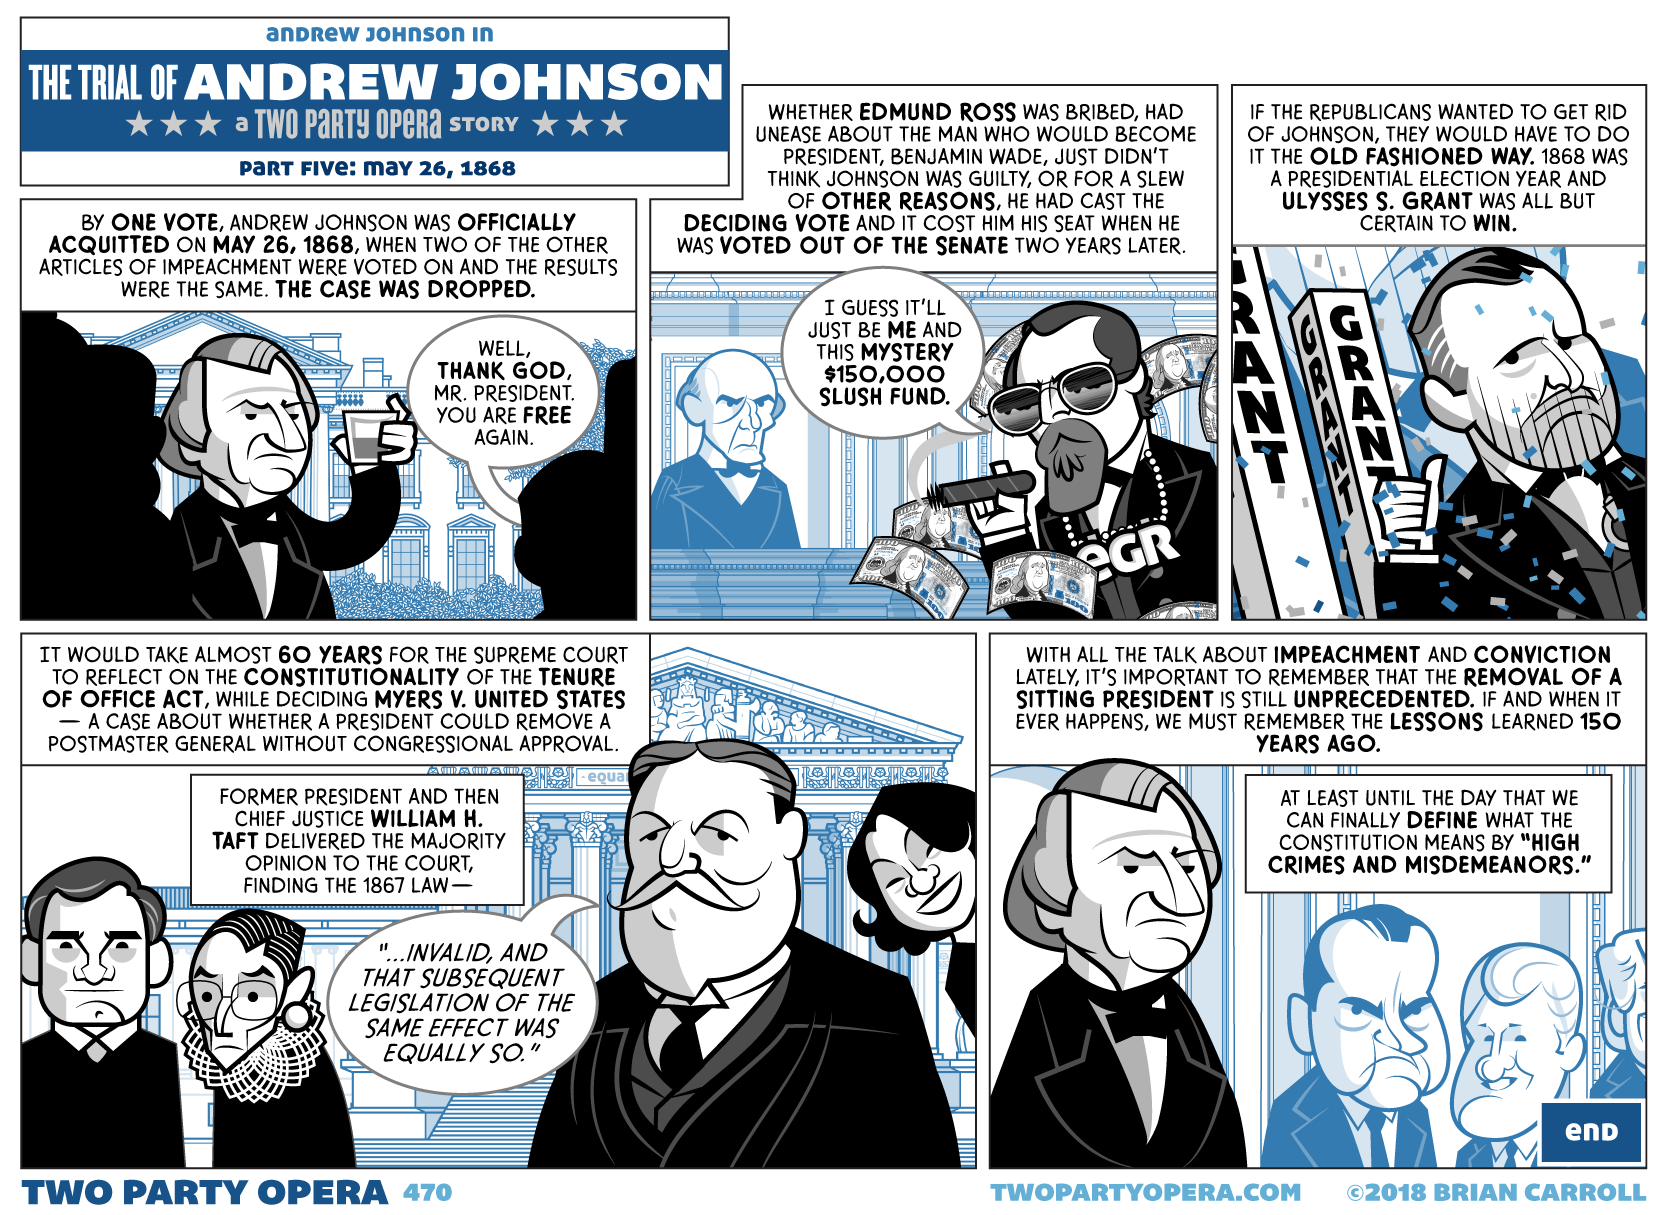 The Trial of Andrew Johnson – Part Five: May 26, 1868